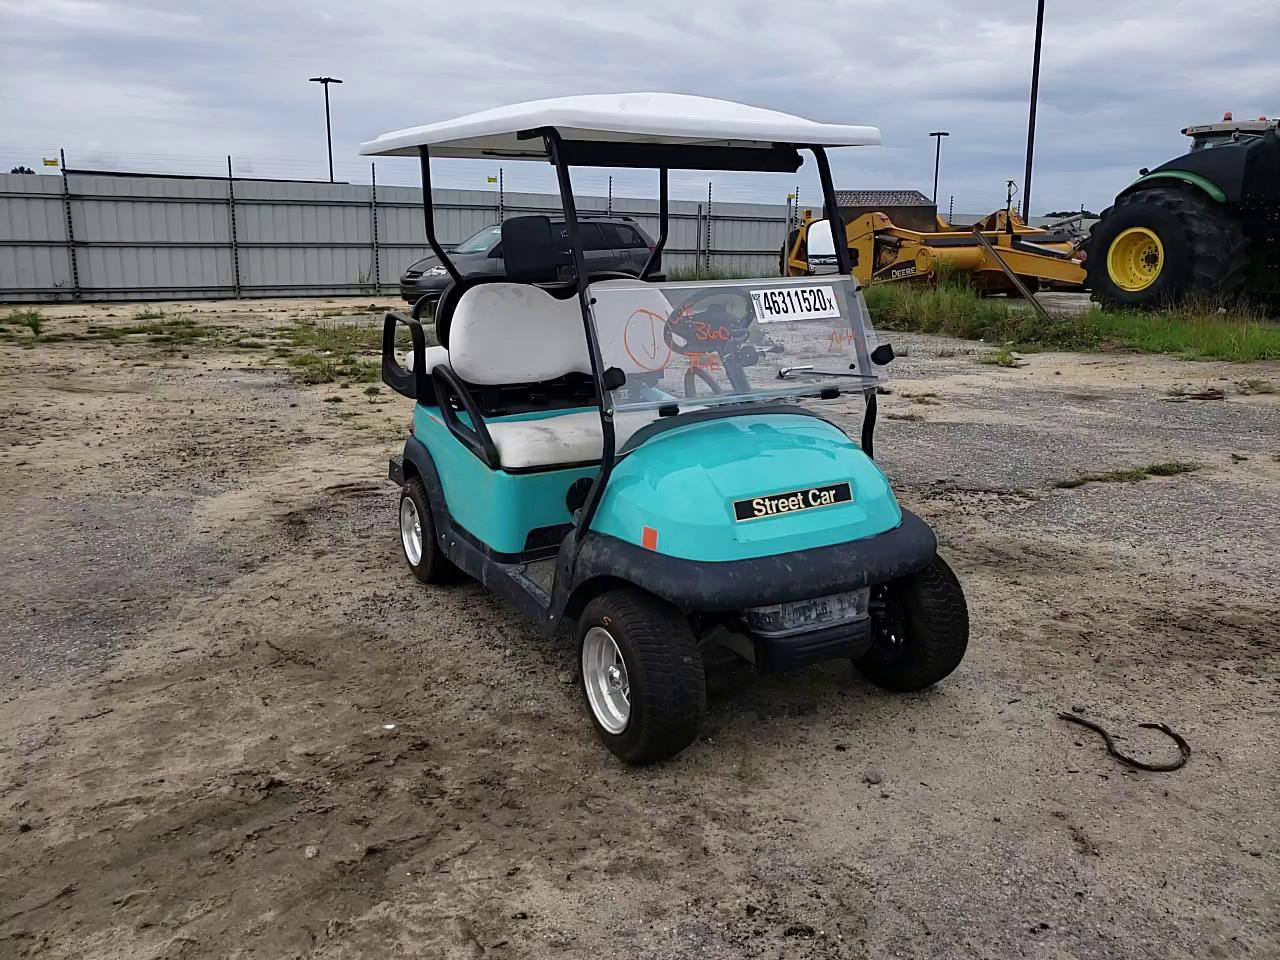 2020 Golf Golf Cart for sale in Lumberton, NC